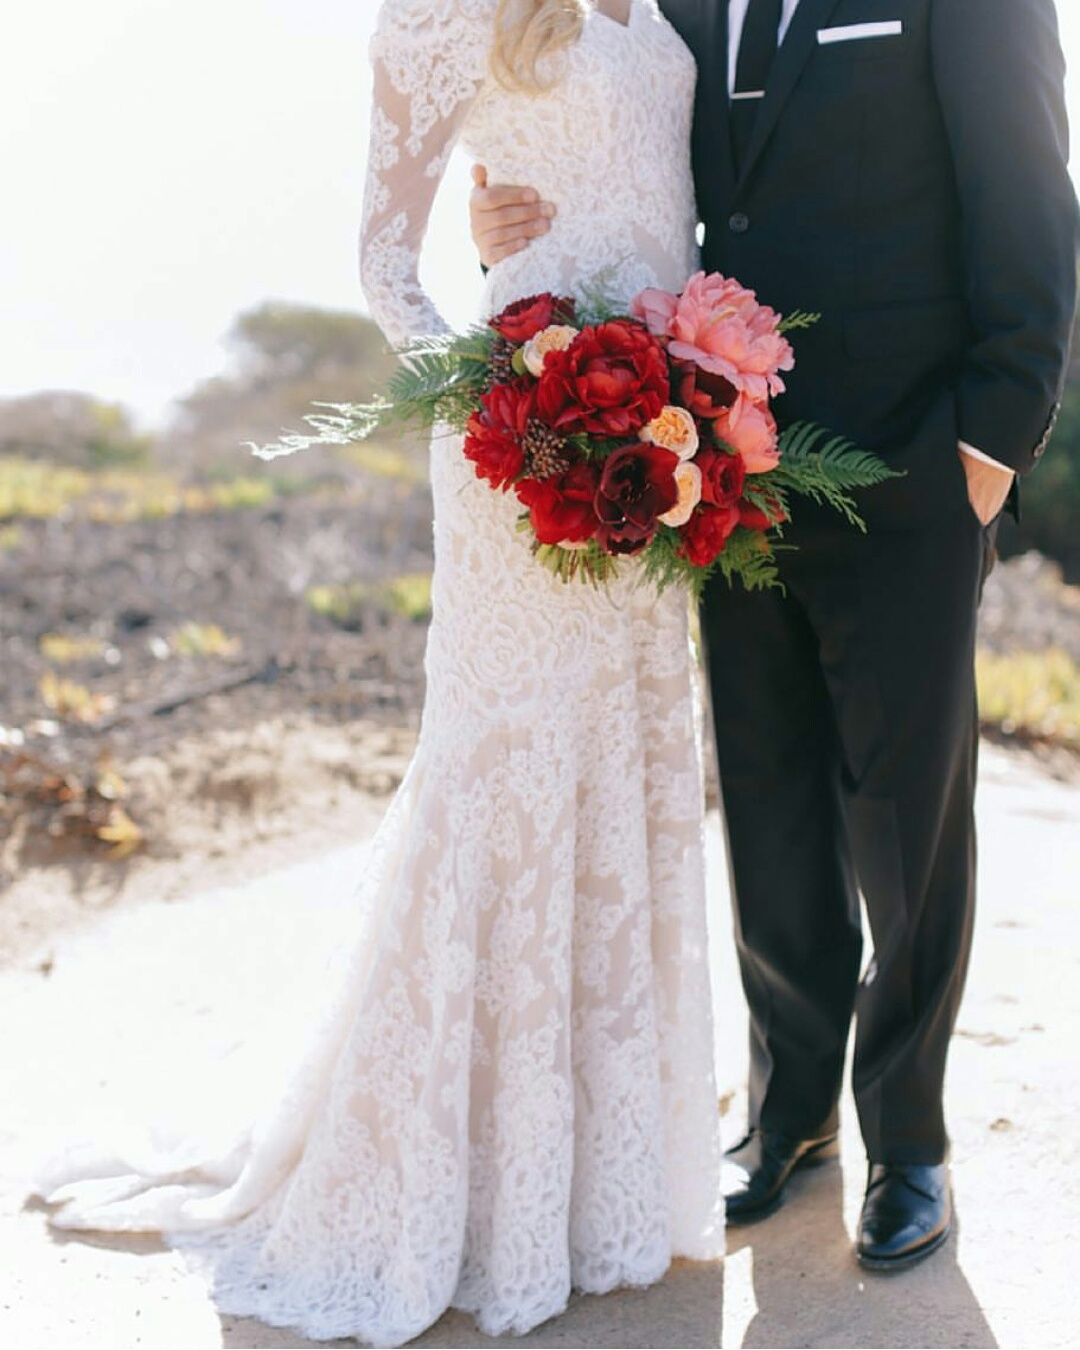 Modest long sleeve lace wedding dresses  modest wedding dress with long sleeves and a slim skirt from alta